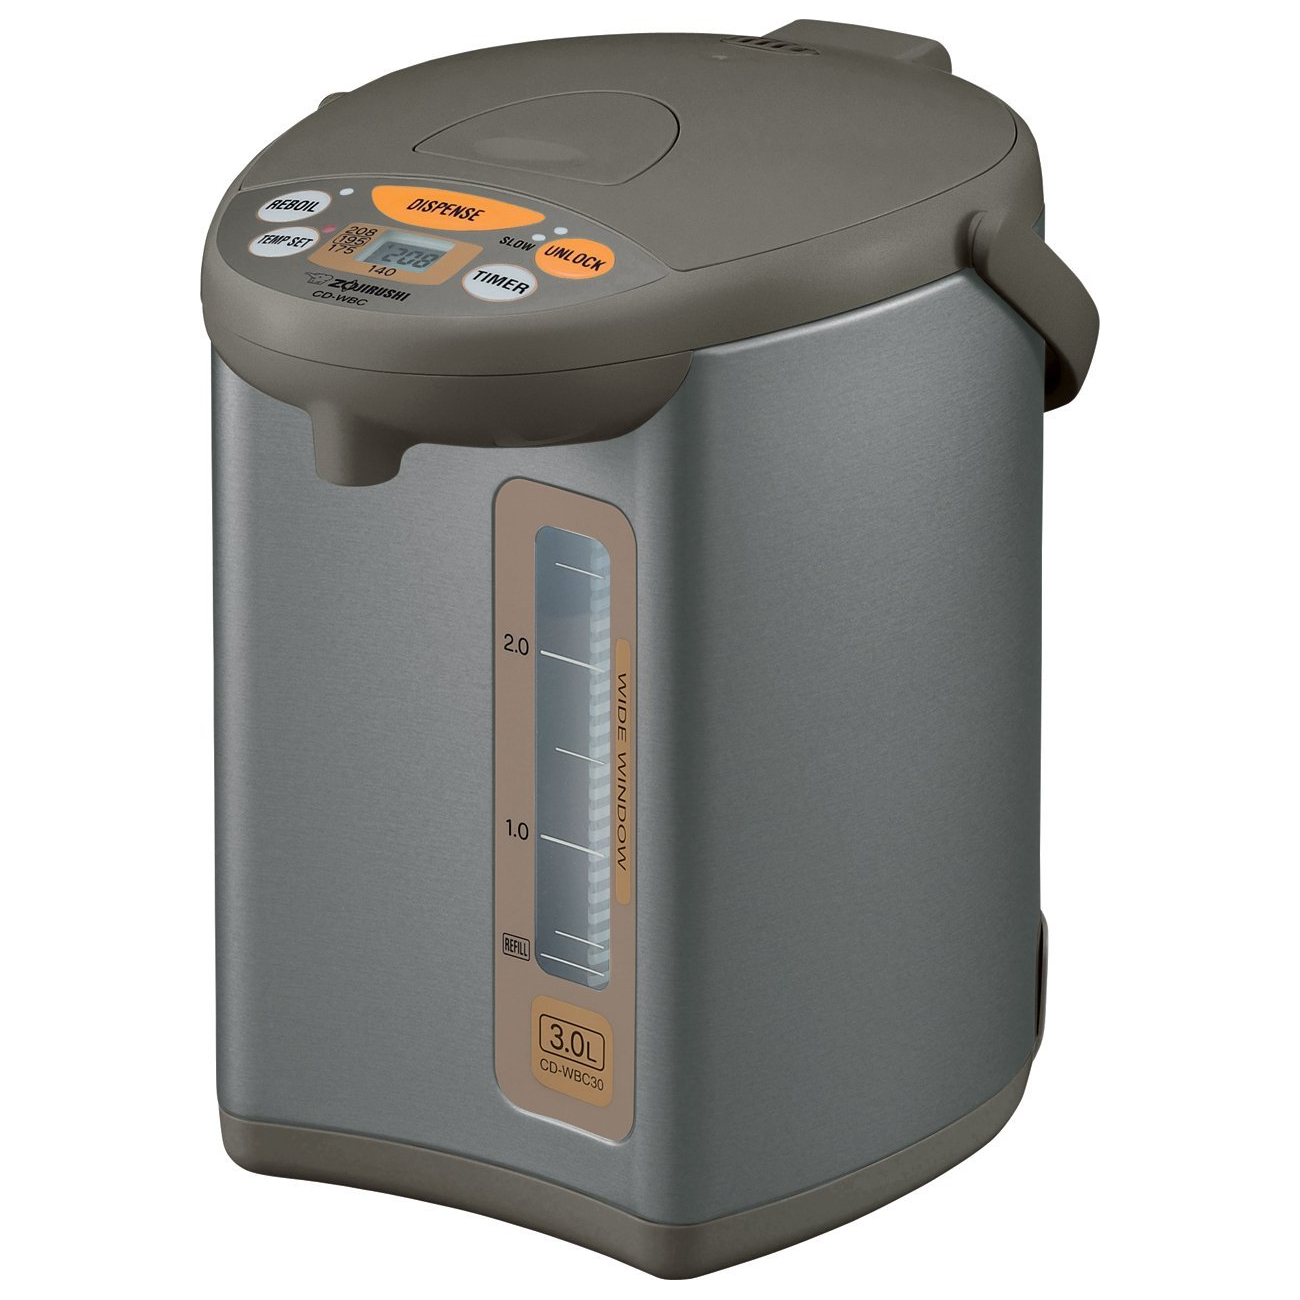 Zojirushi Micom Silver and Brown 3.1 Quart Water Boiler and Warmer